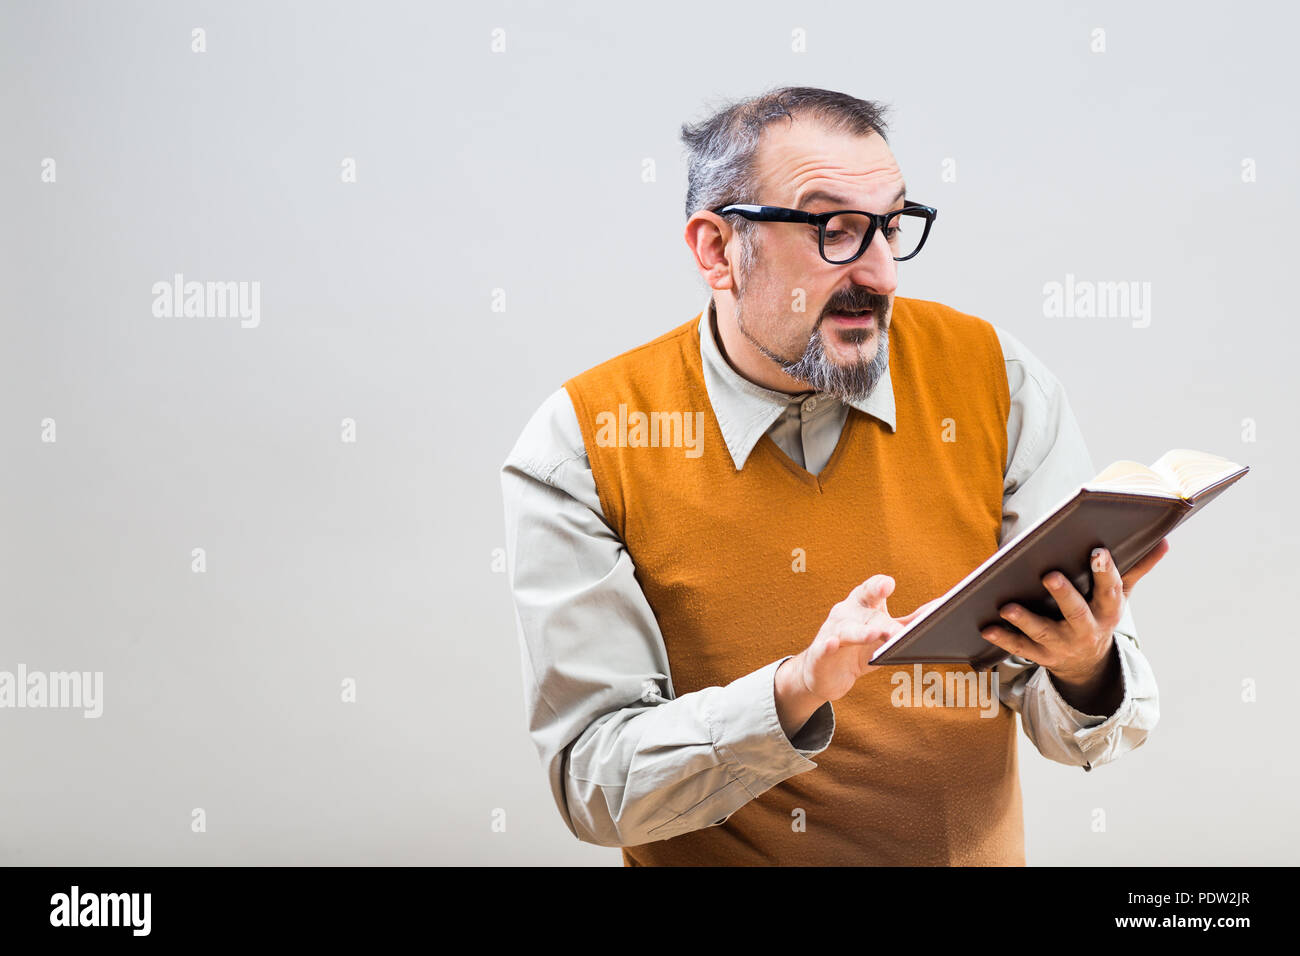 Nerdy businessman is holding his personal organizer and working. - Stock Image